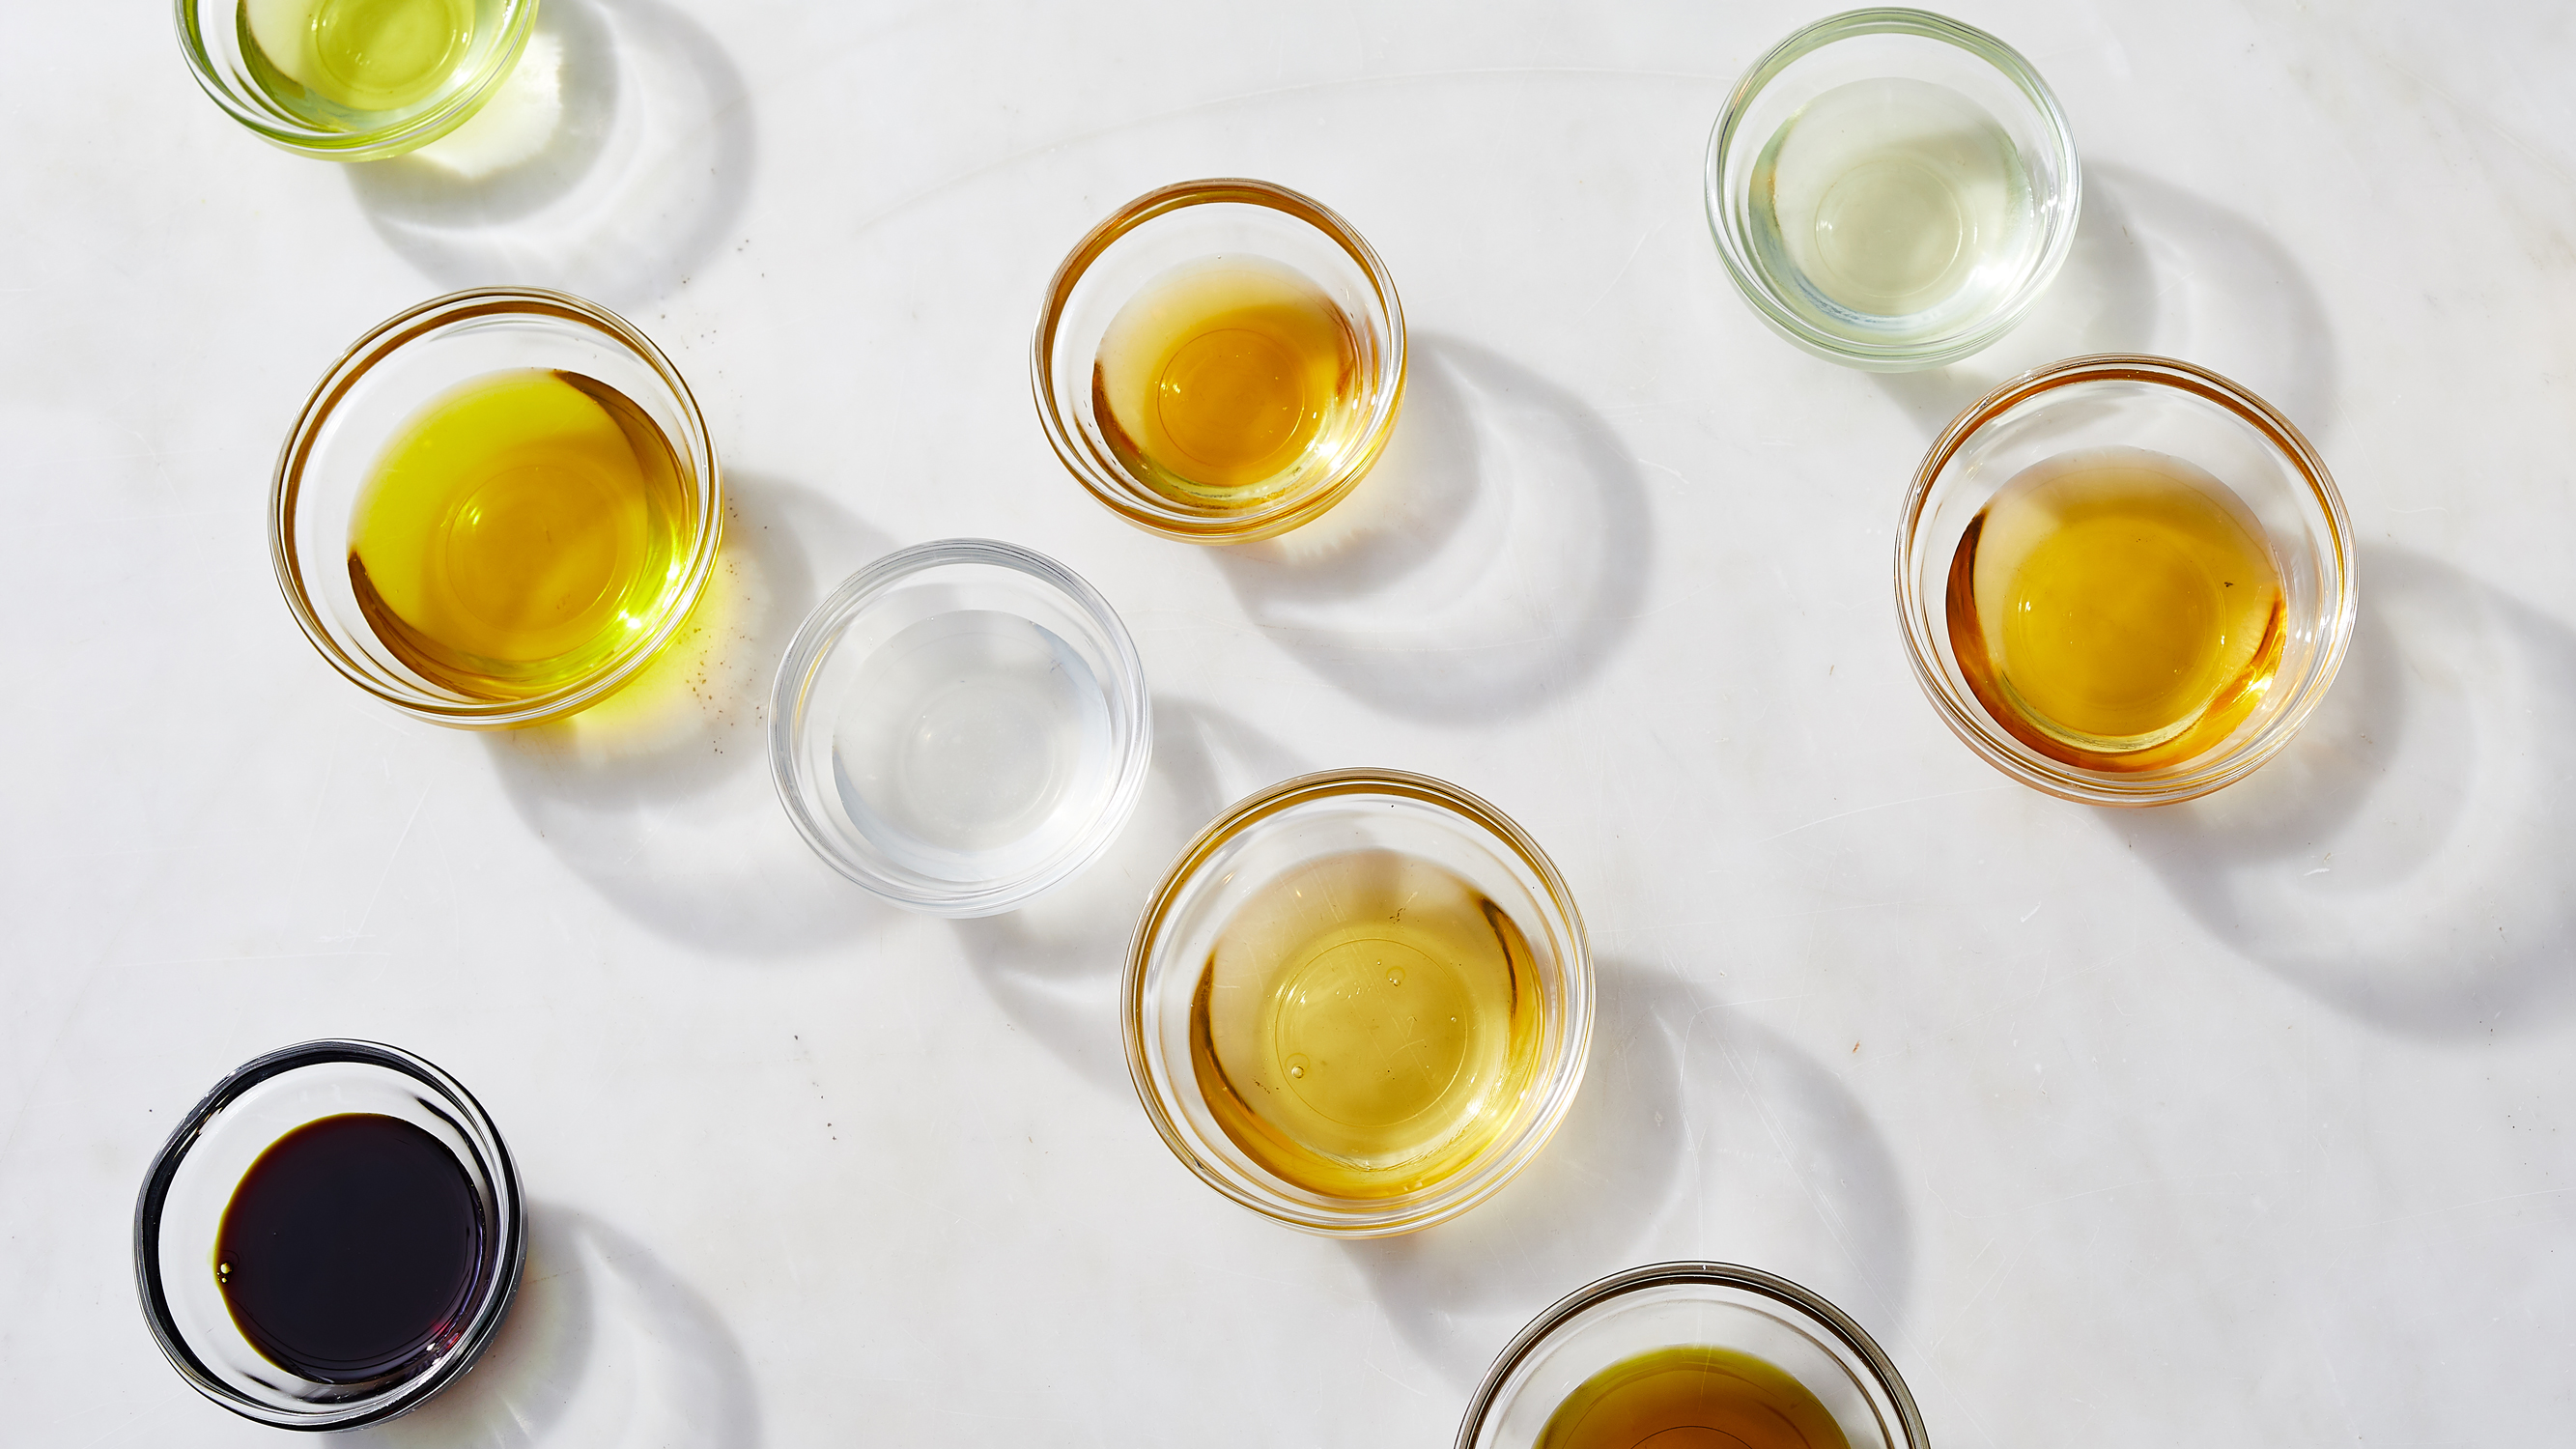 oils in small round dishes